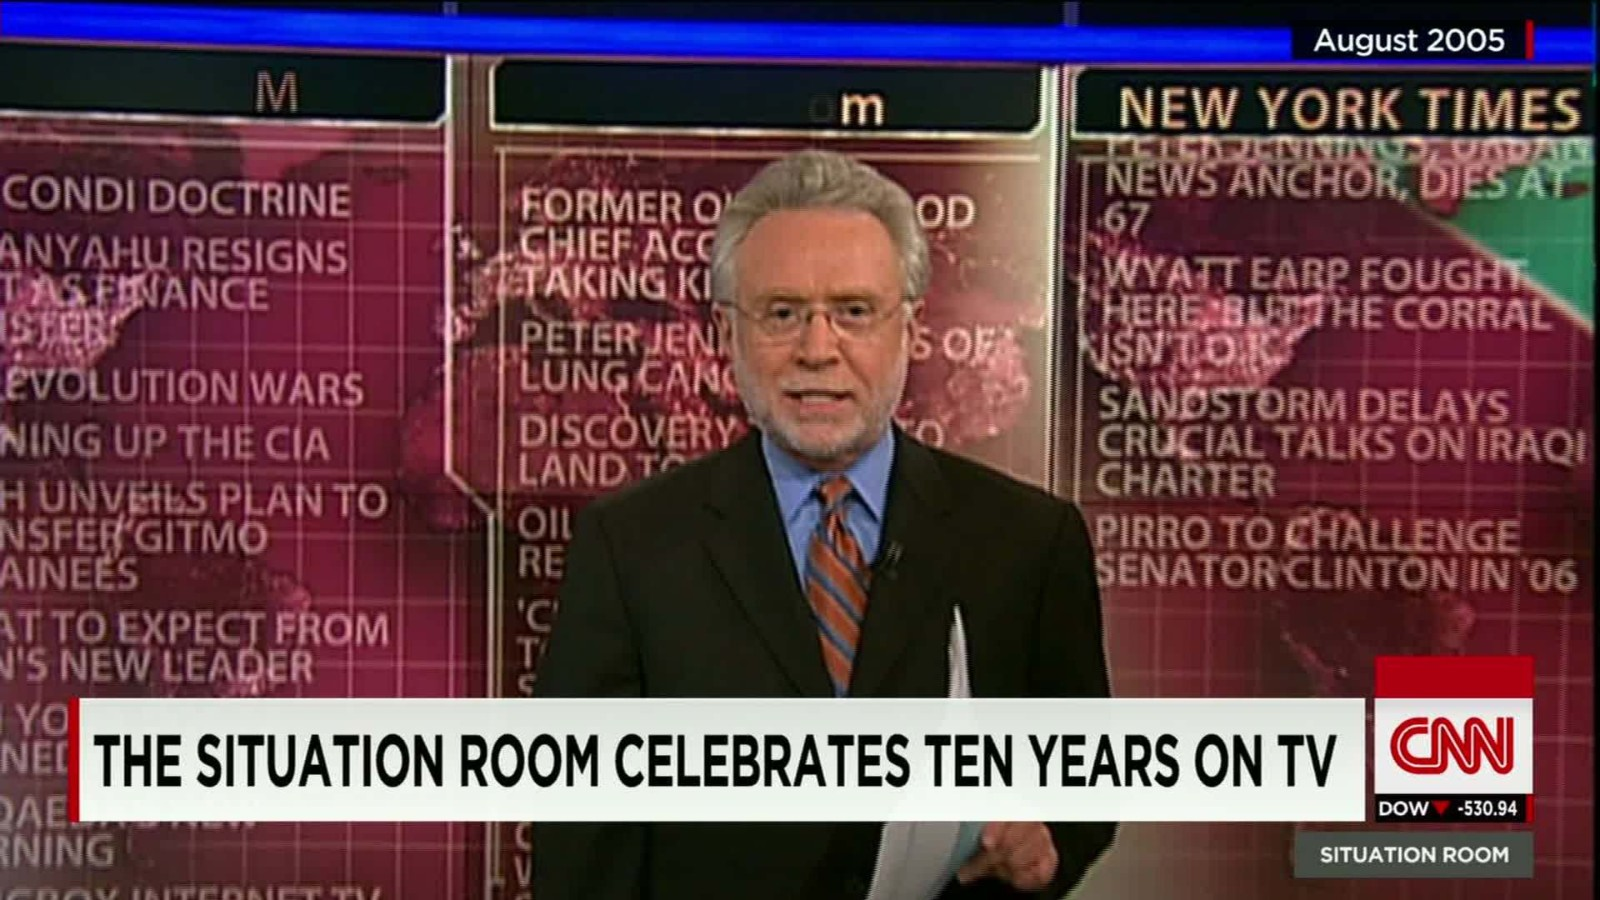 The Situation Room Celebrates 10 Year Anniversary   CNN Video